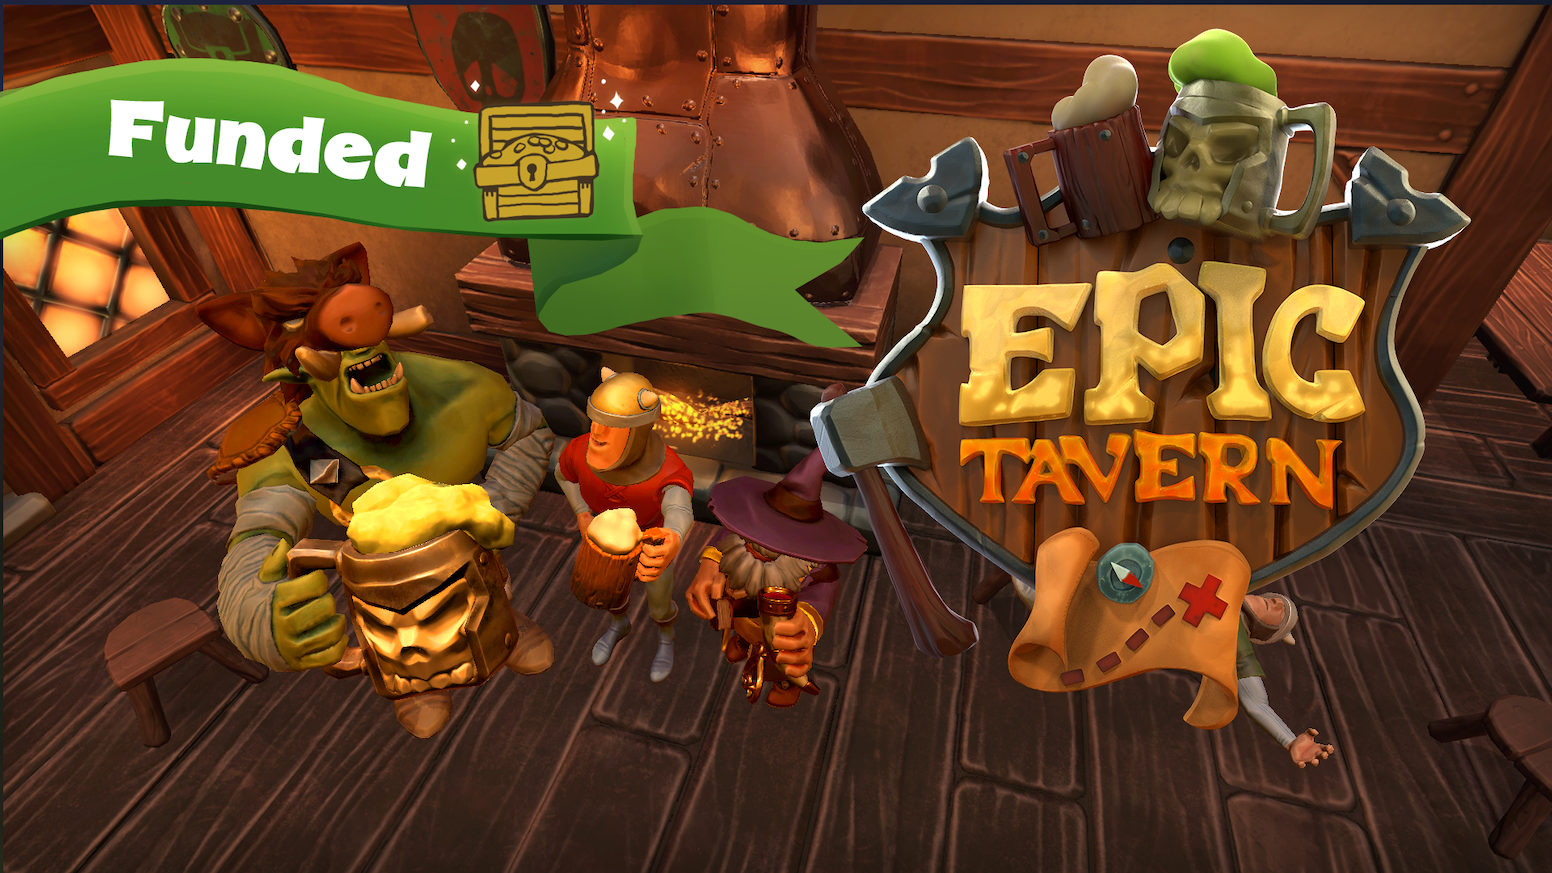 Epic Tavern: The first management-RPG where you rule the land from your Tavern. Recruit heroes, send them on quests, and reap the rewards! Just finding us now? Get Epic Tavern by clicking the button below!!